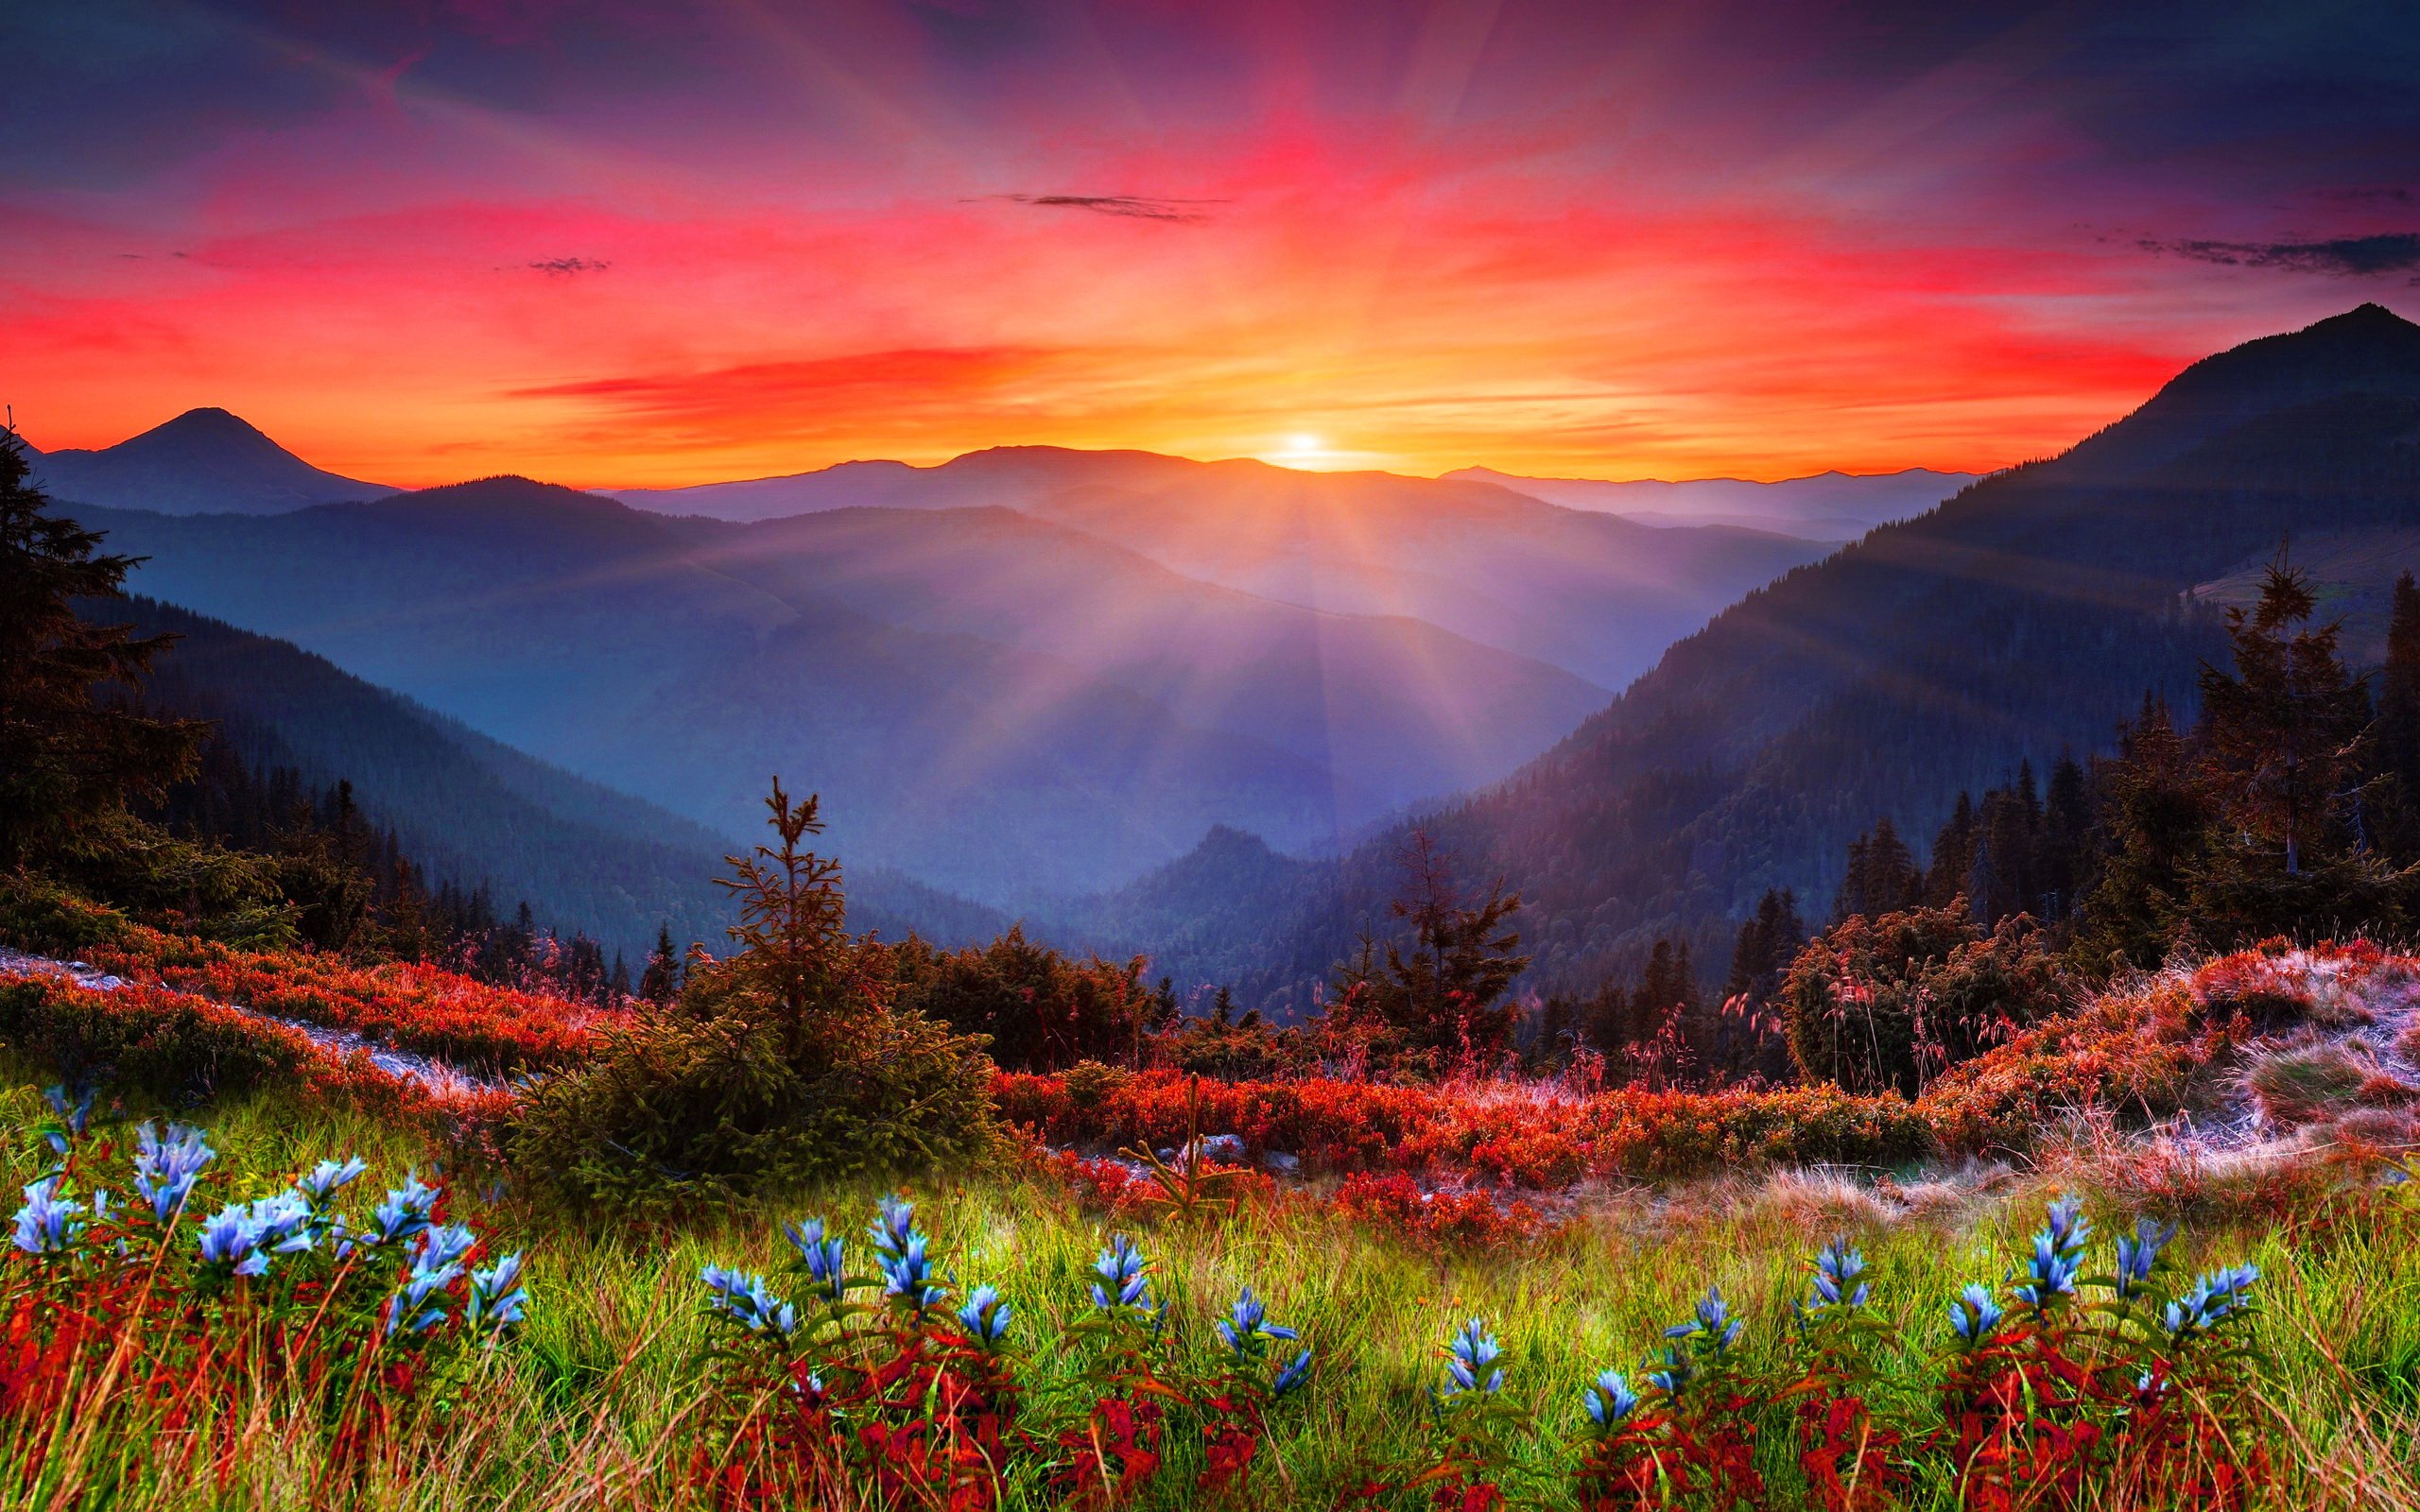 Beautiful Pictures Of Good Morning Wishes - Mountain Sunset - HD Wallpaper